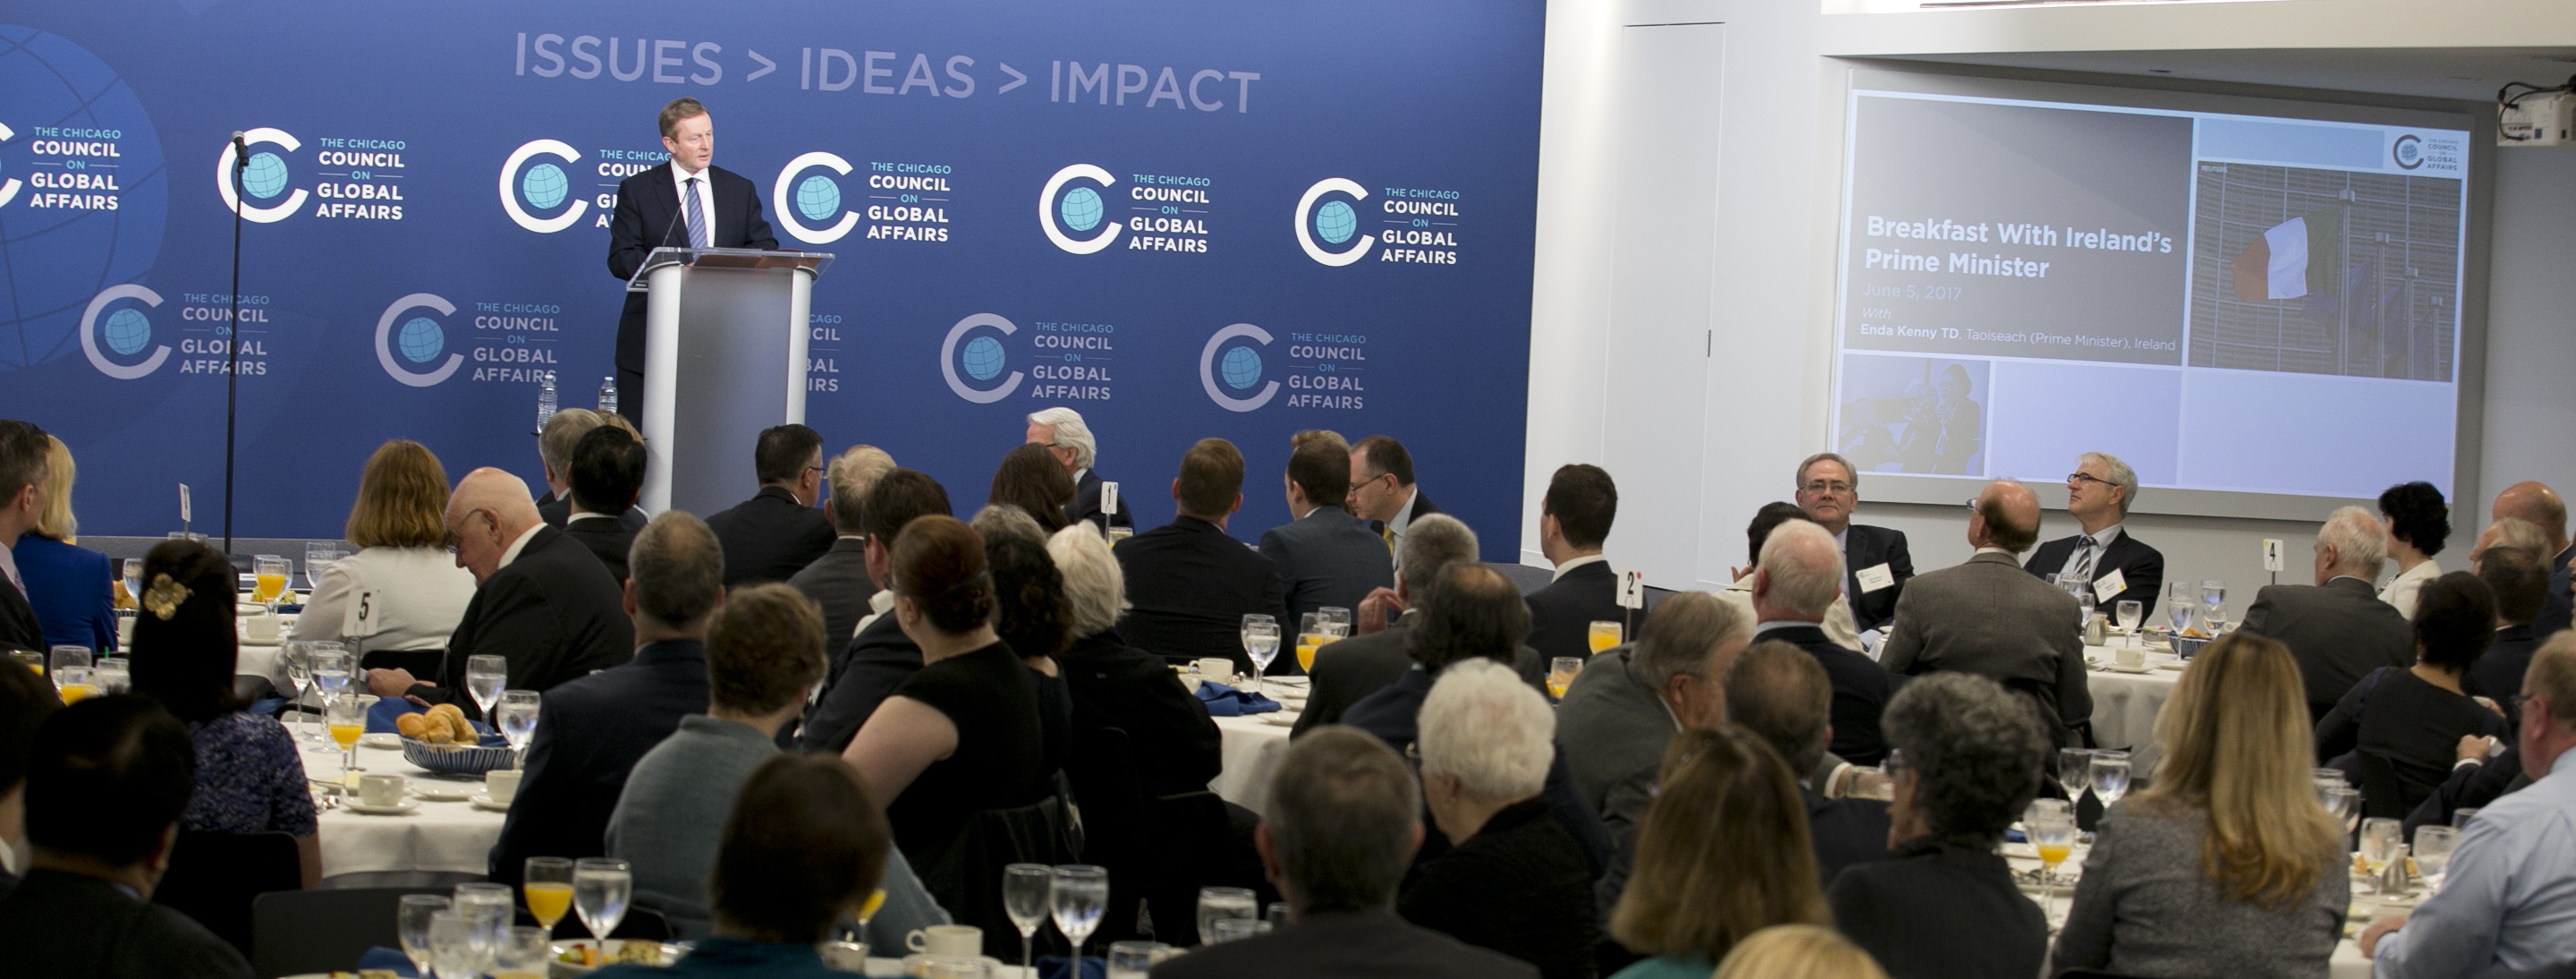 Address By Taoiseach Enda Kenny At The Chicago Council On Global Affairs,  Chicago